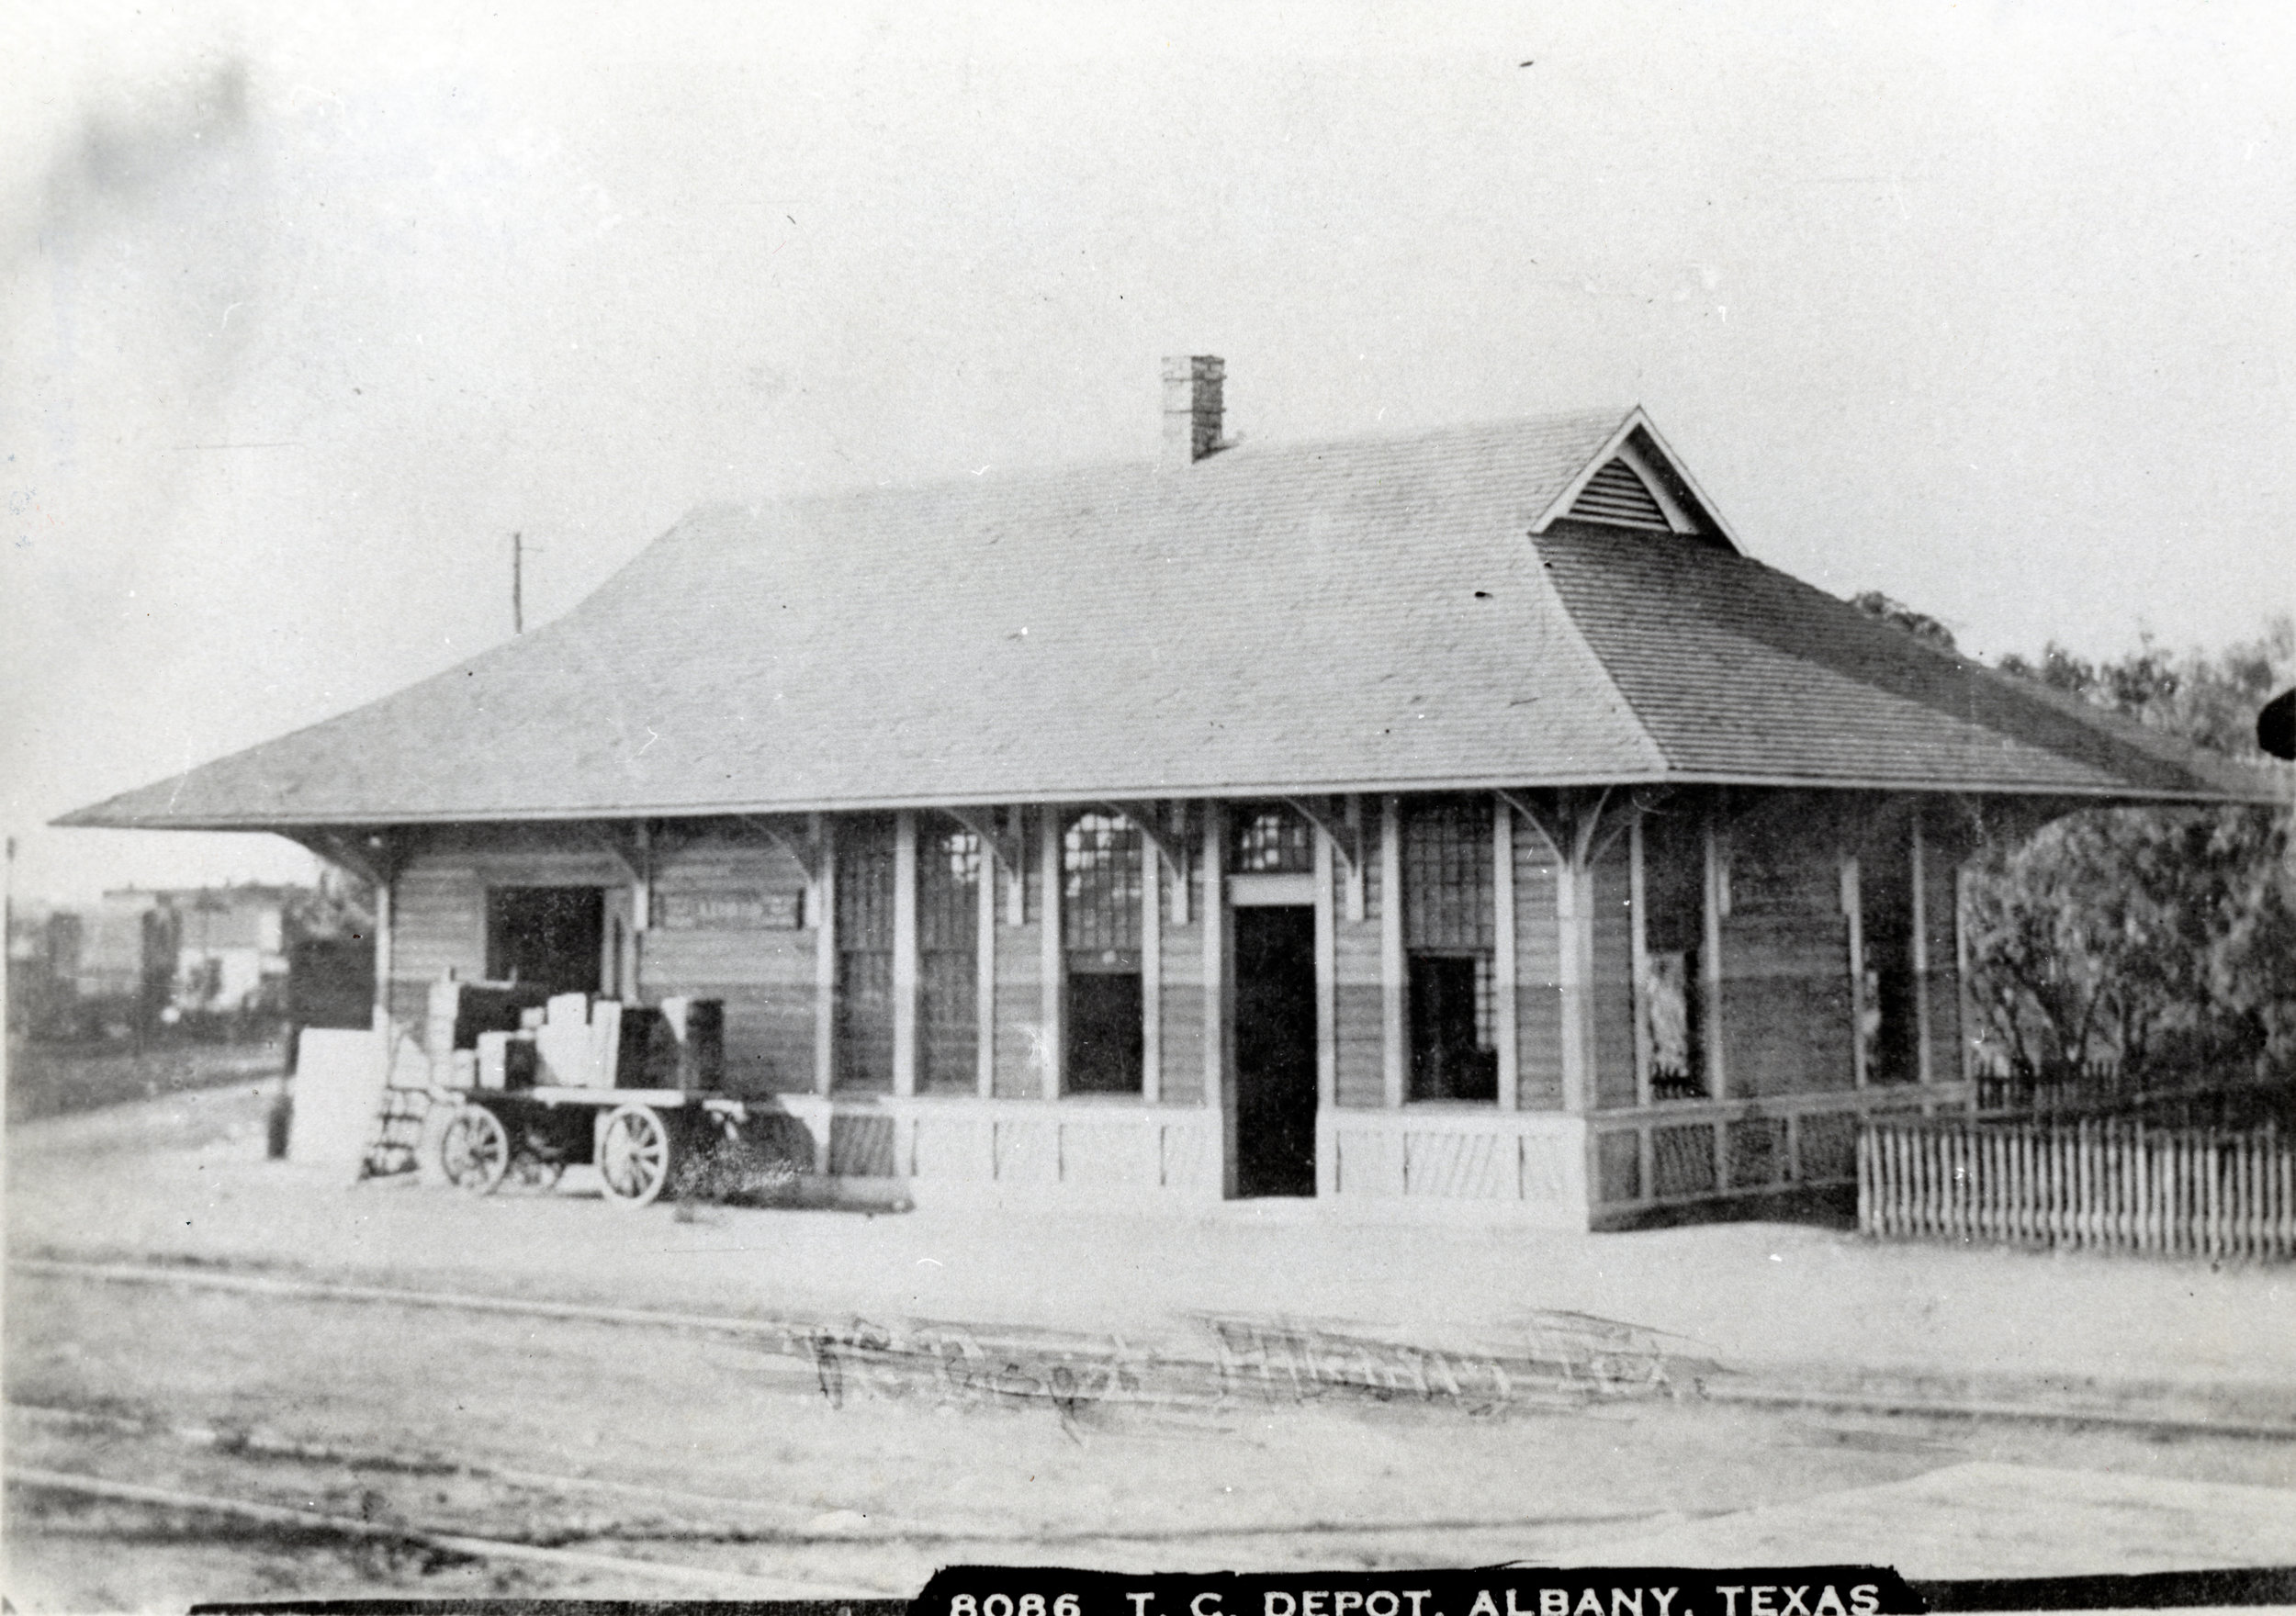 Texas Central Depot in Albany TX, Undated.jpg